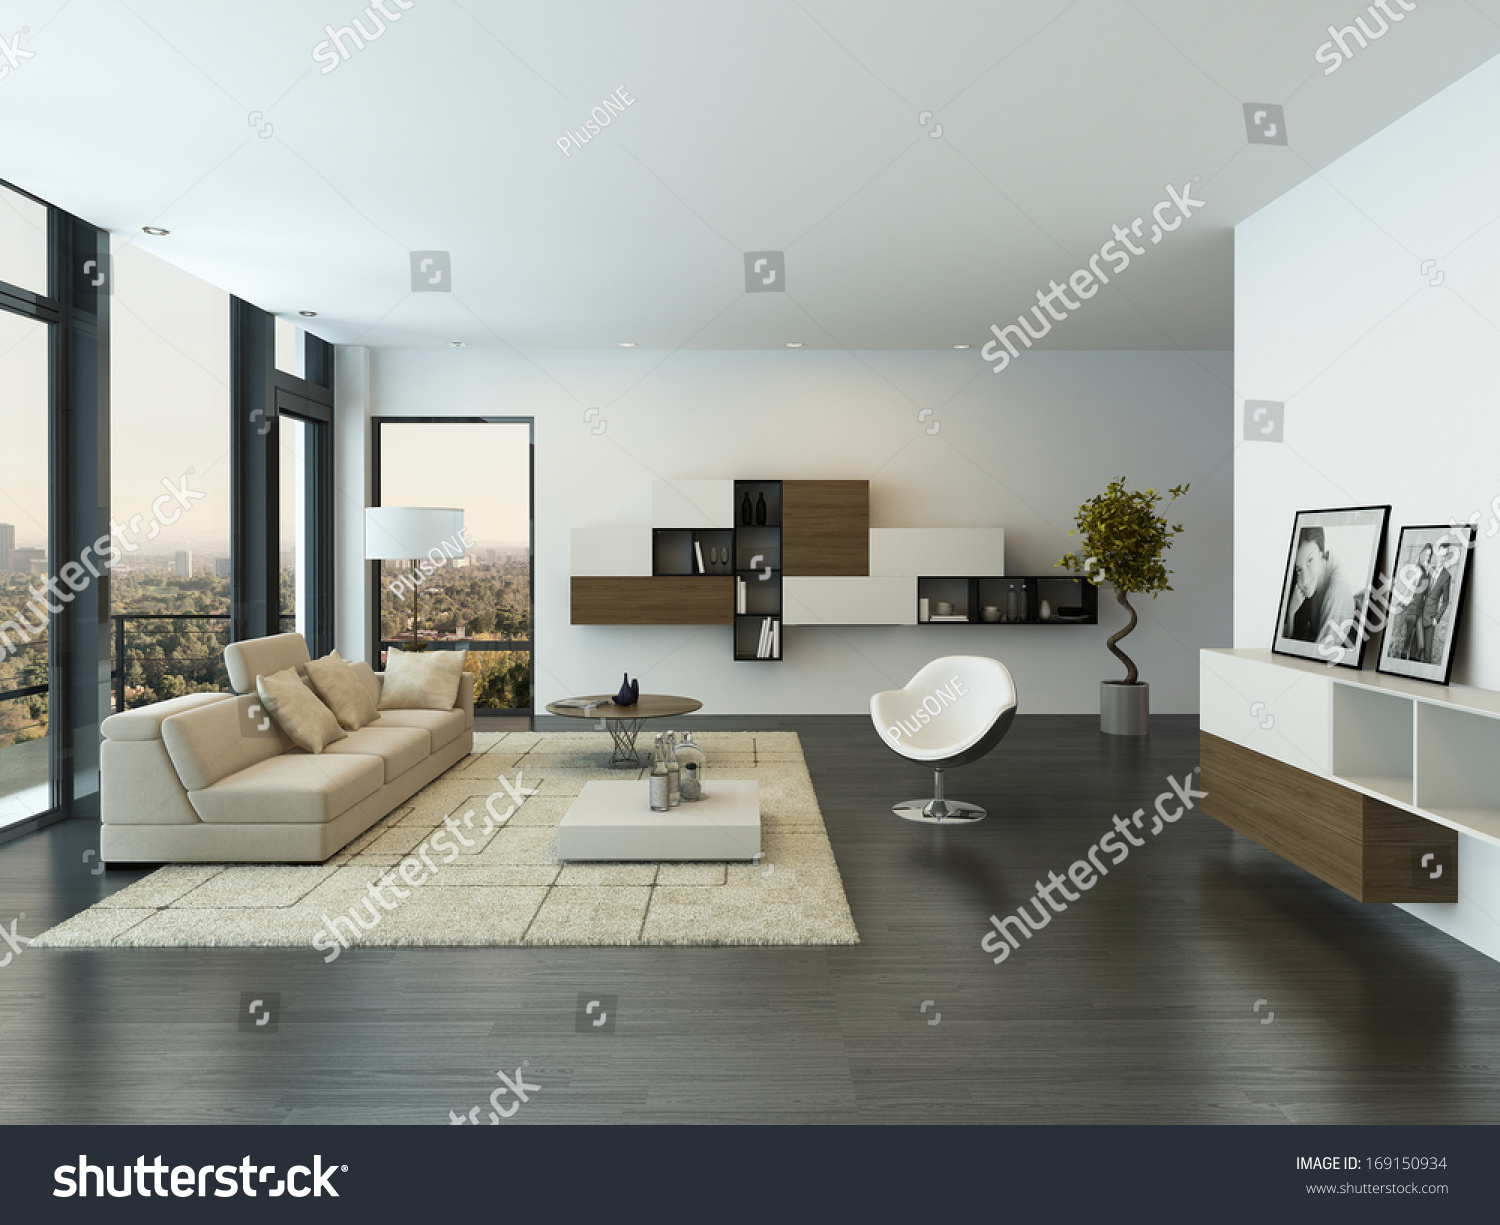 contemporary living room loft interior stock illustration